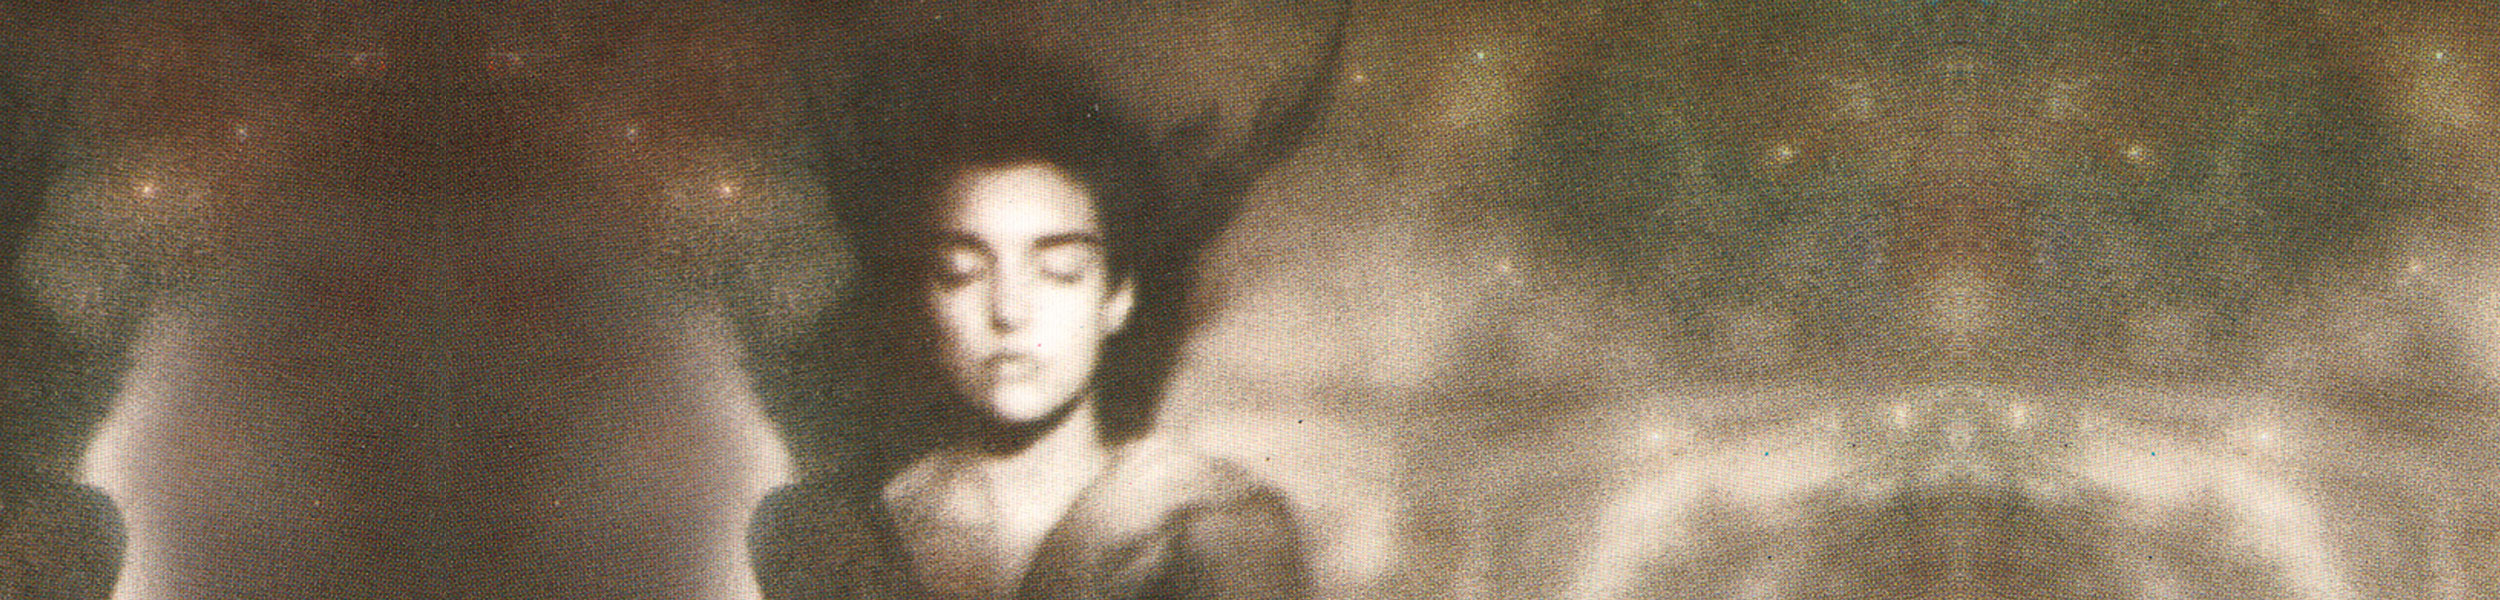 This Mortal Coil - Come Here My Love / Drugs